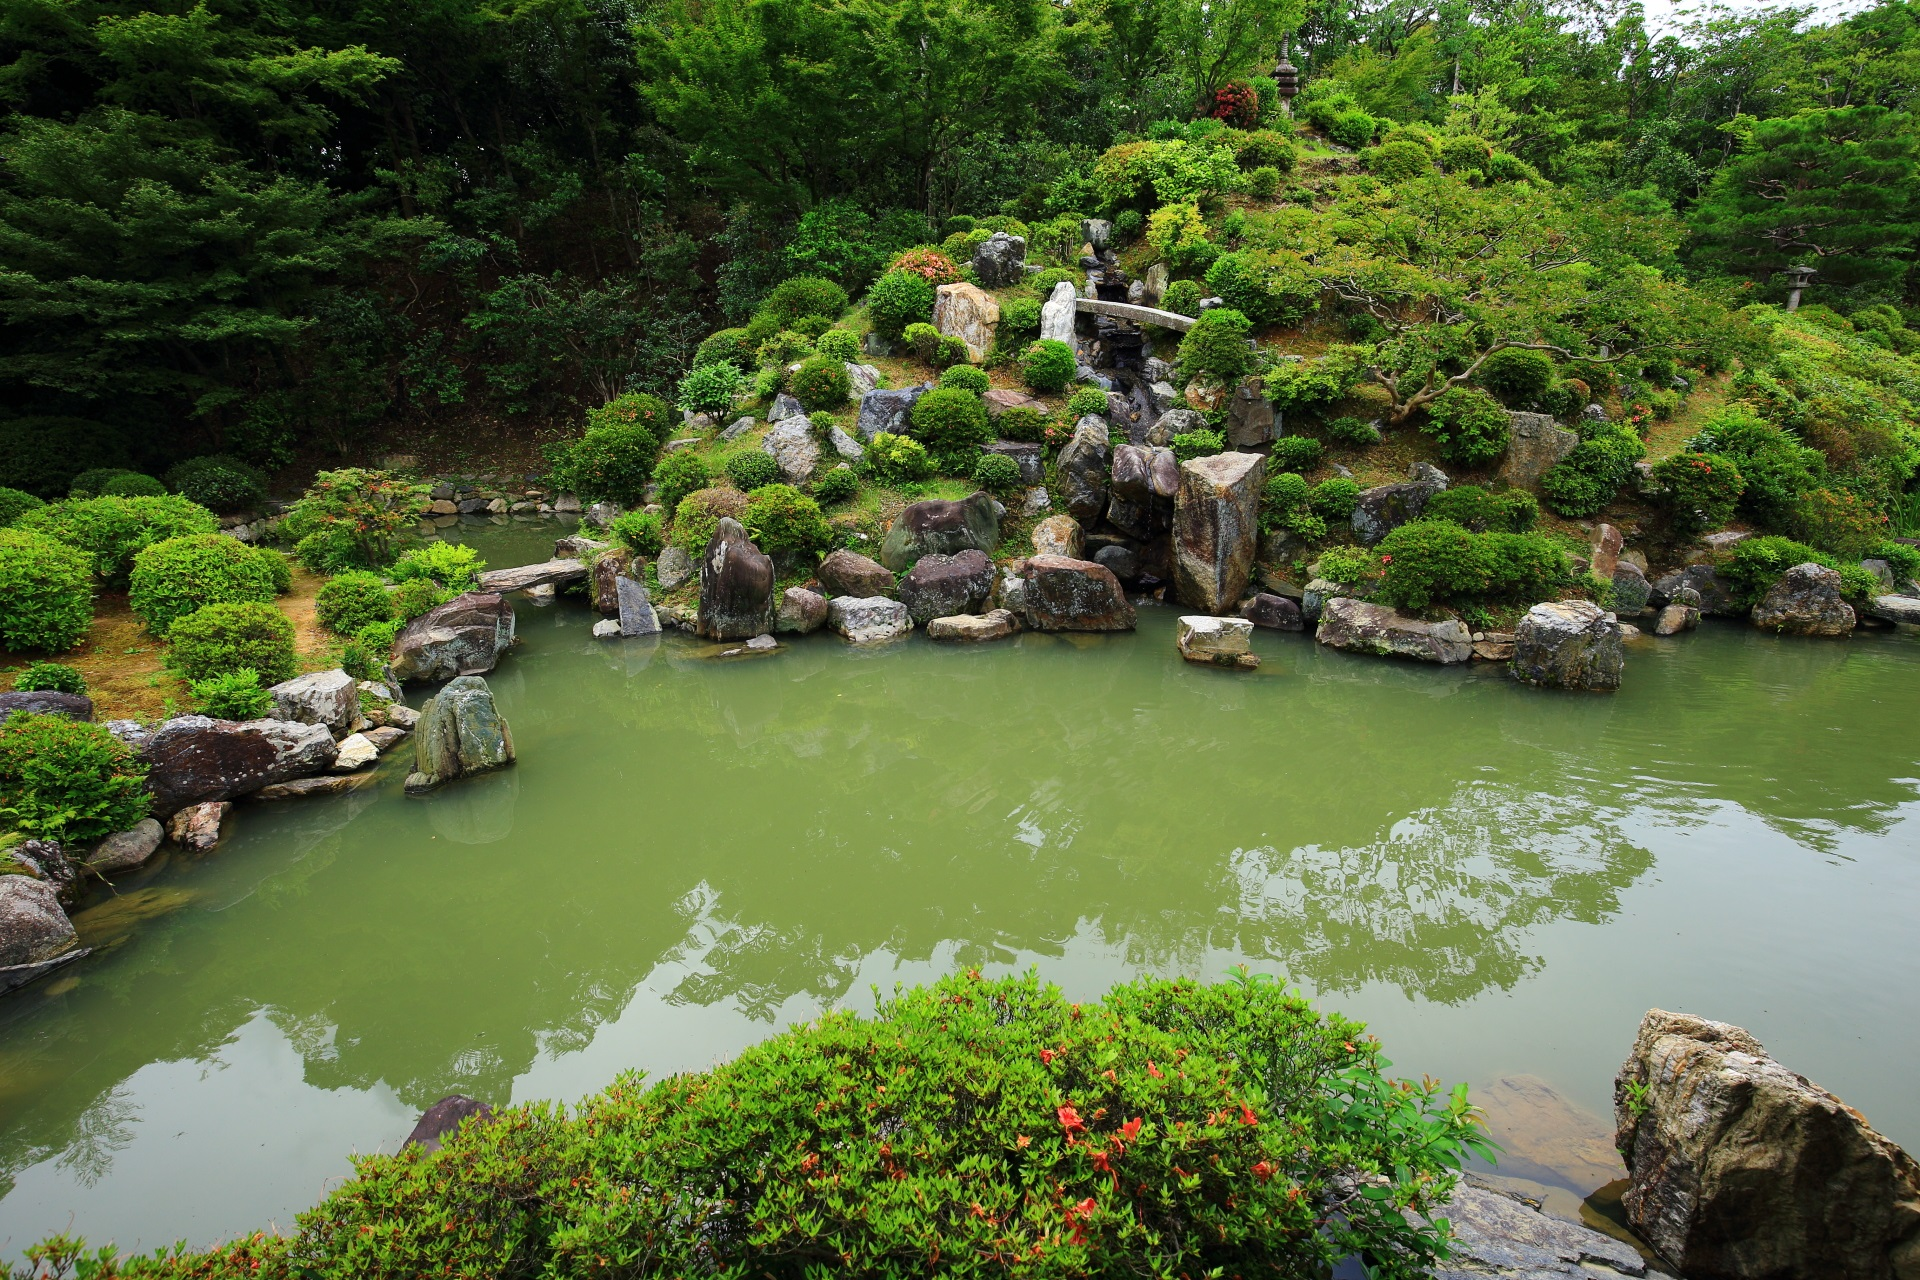 Water and rock garden of Chishaku-in Temple in Kyoto